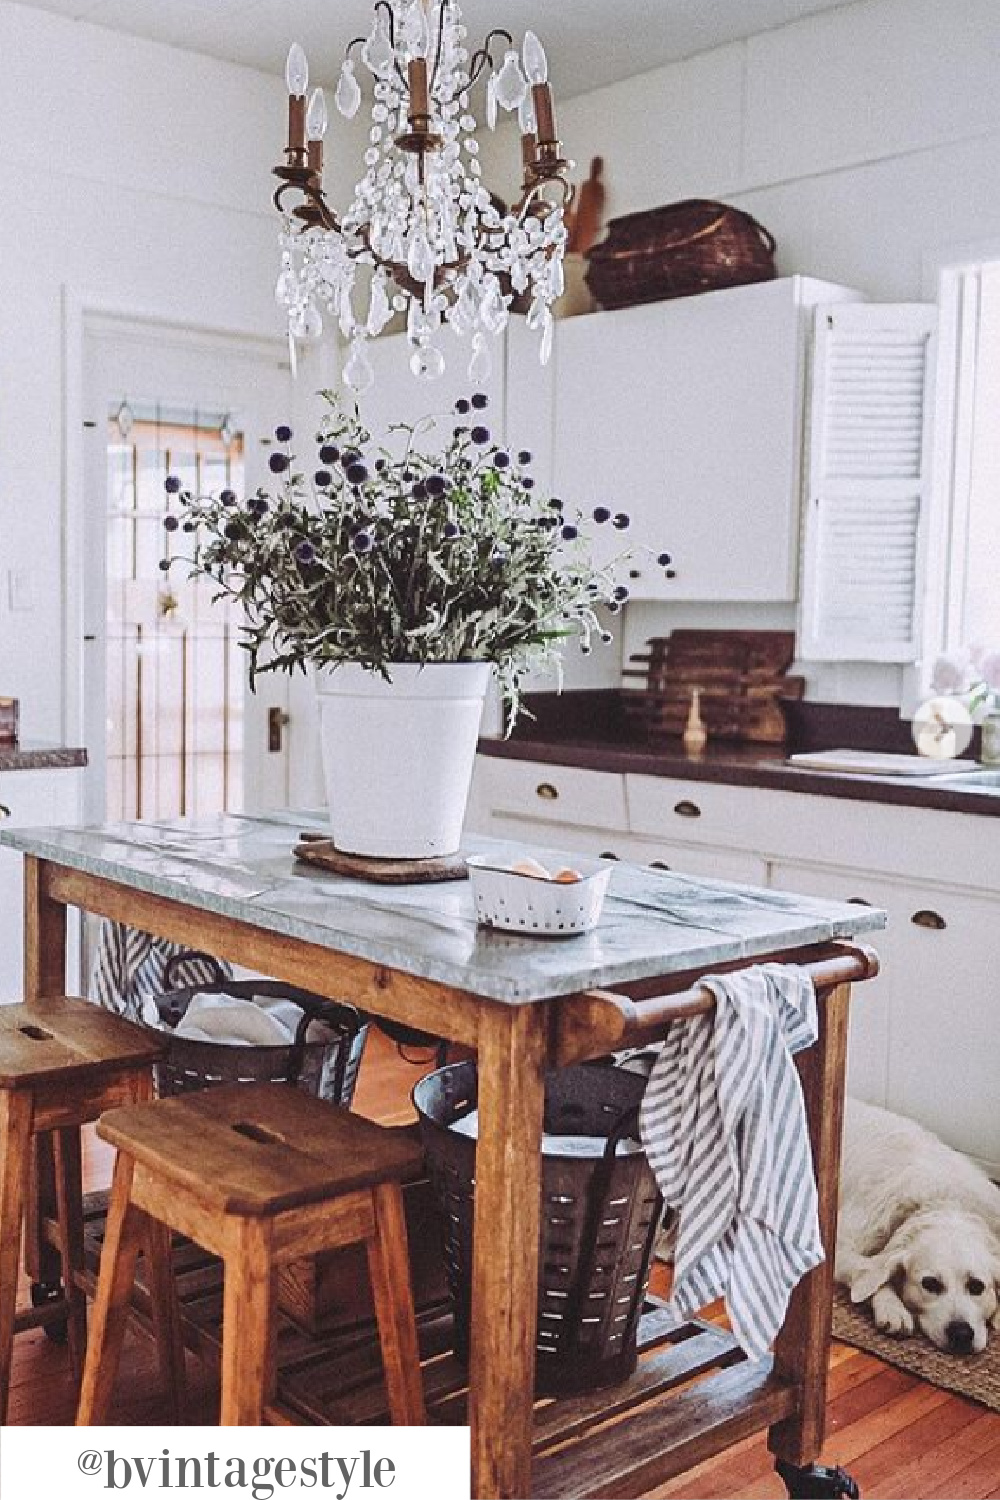 Rustic and charming white farmhouse kitchen with vintage wood work table on wheels - @bvintagestyle. #worktable #kitchencart #vintageworktable